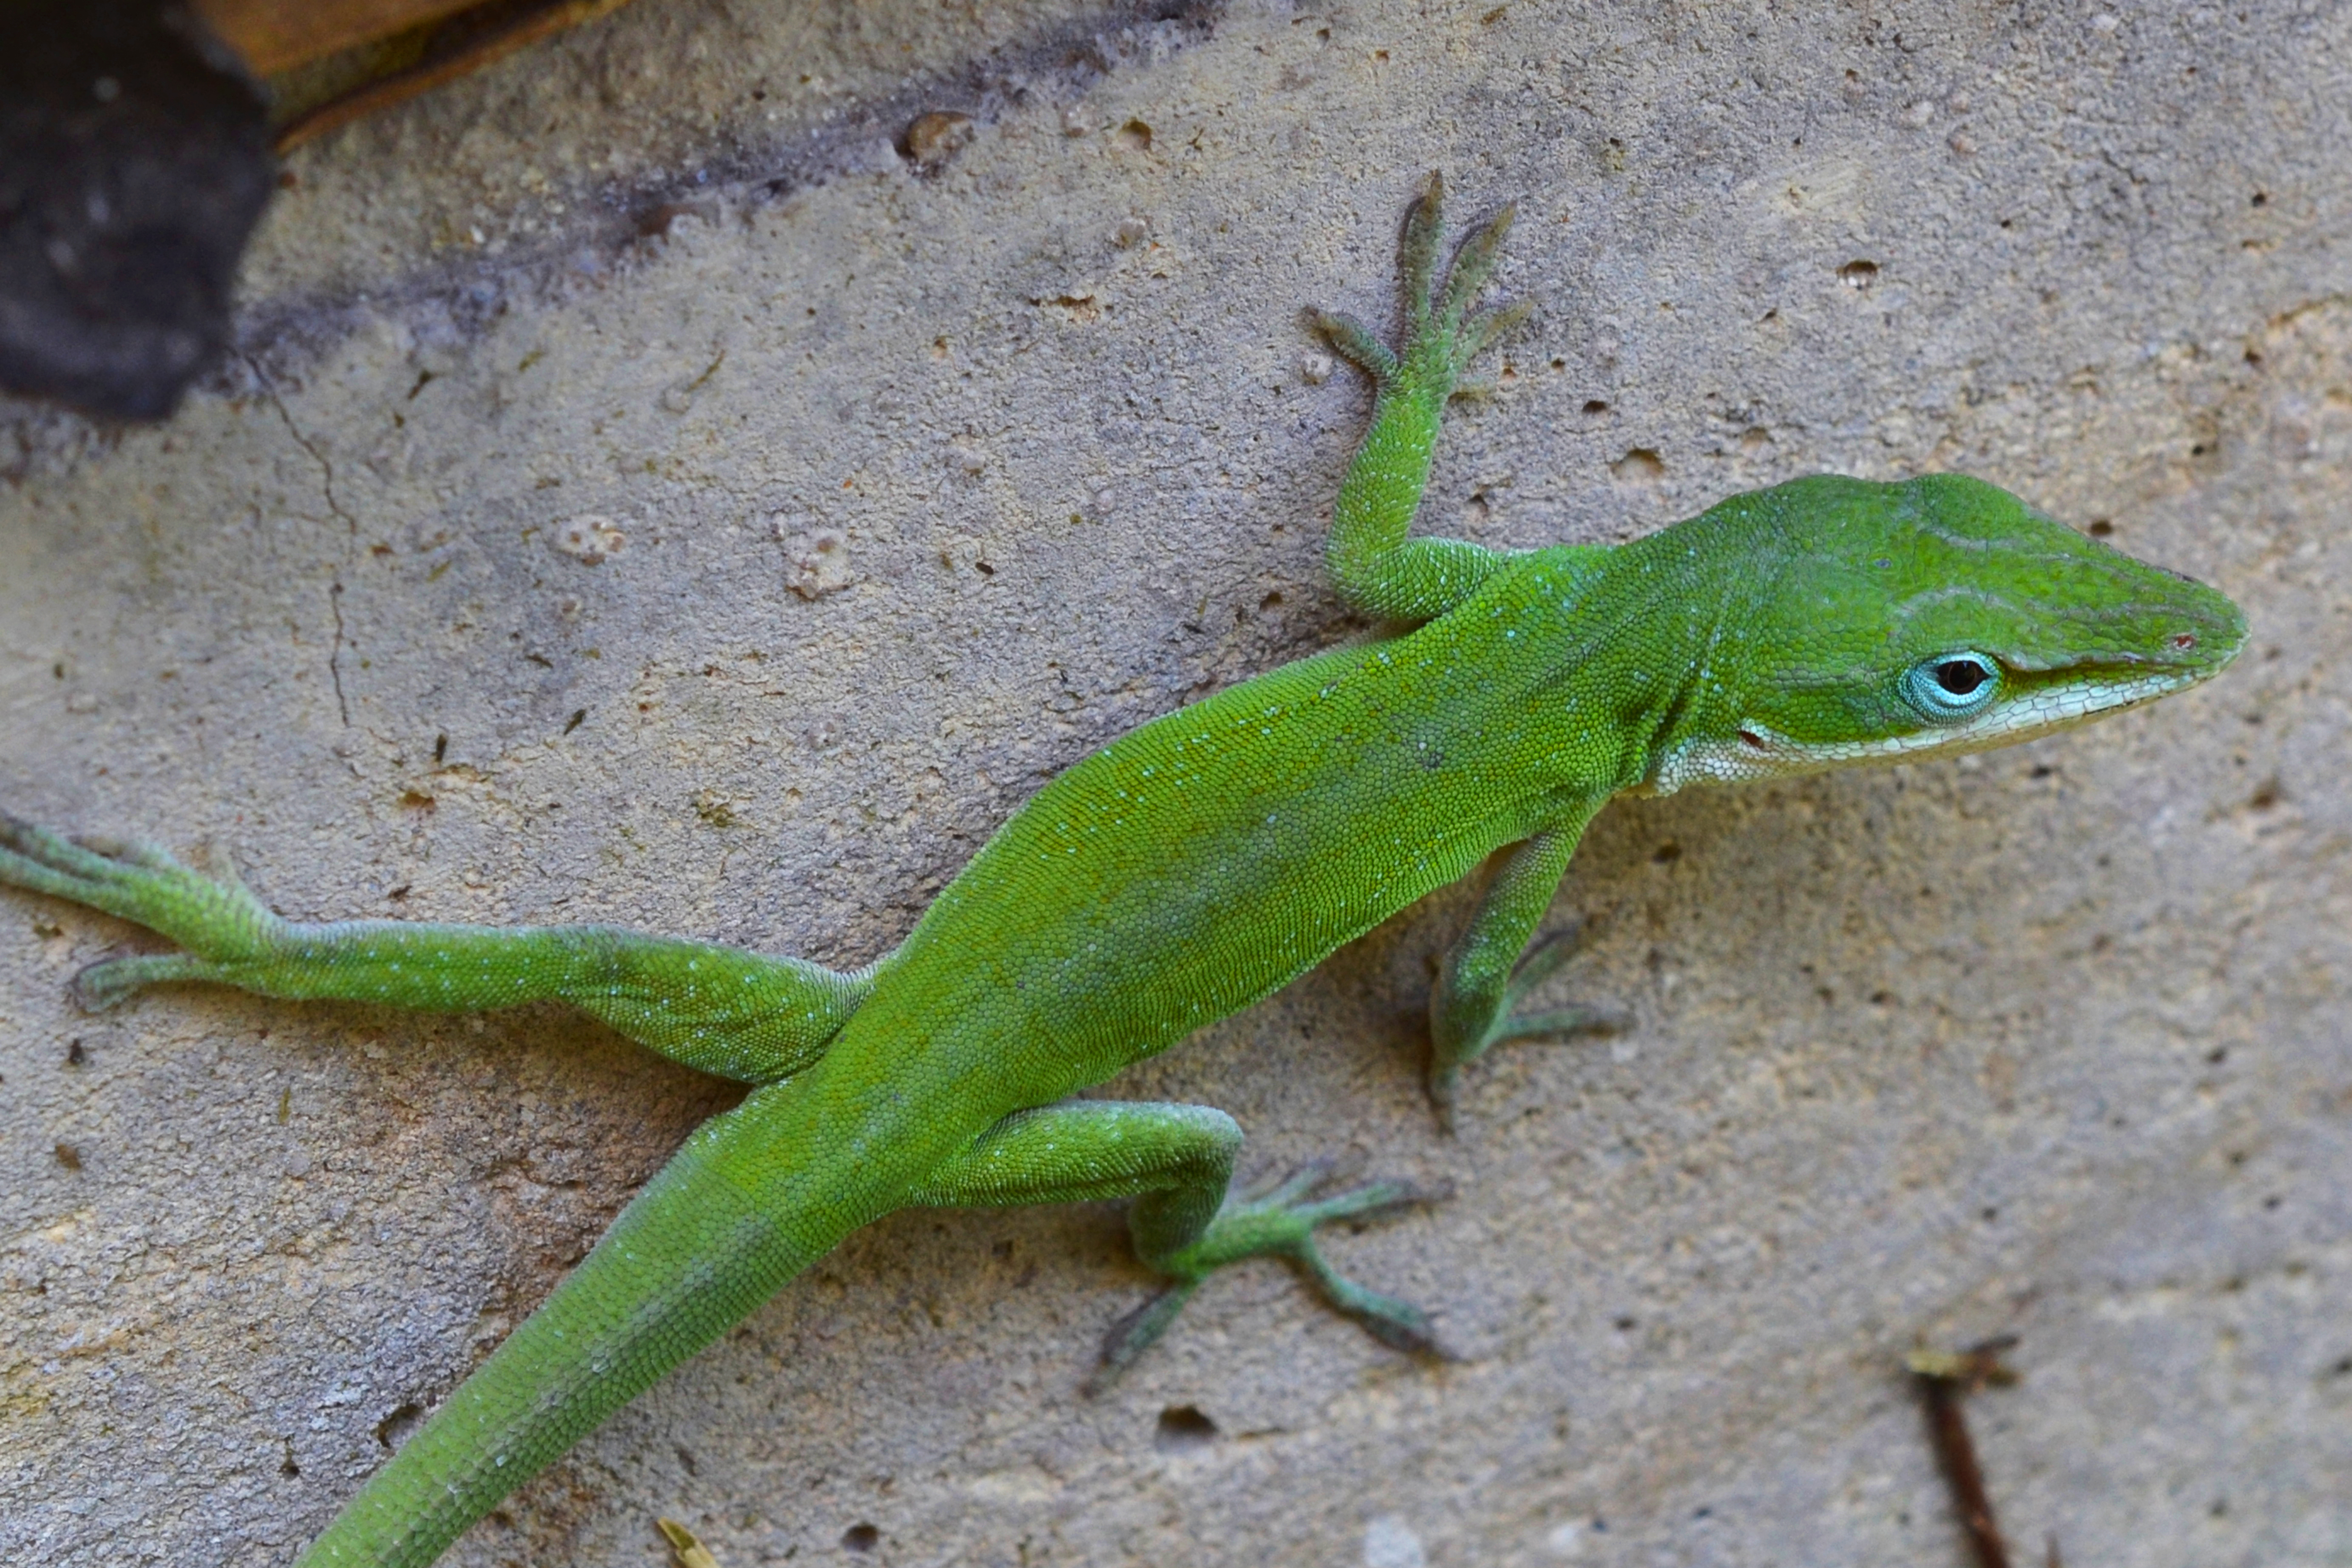 Green anole vs brown anole - photo#10